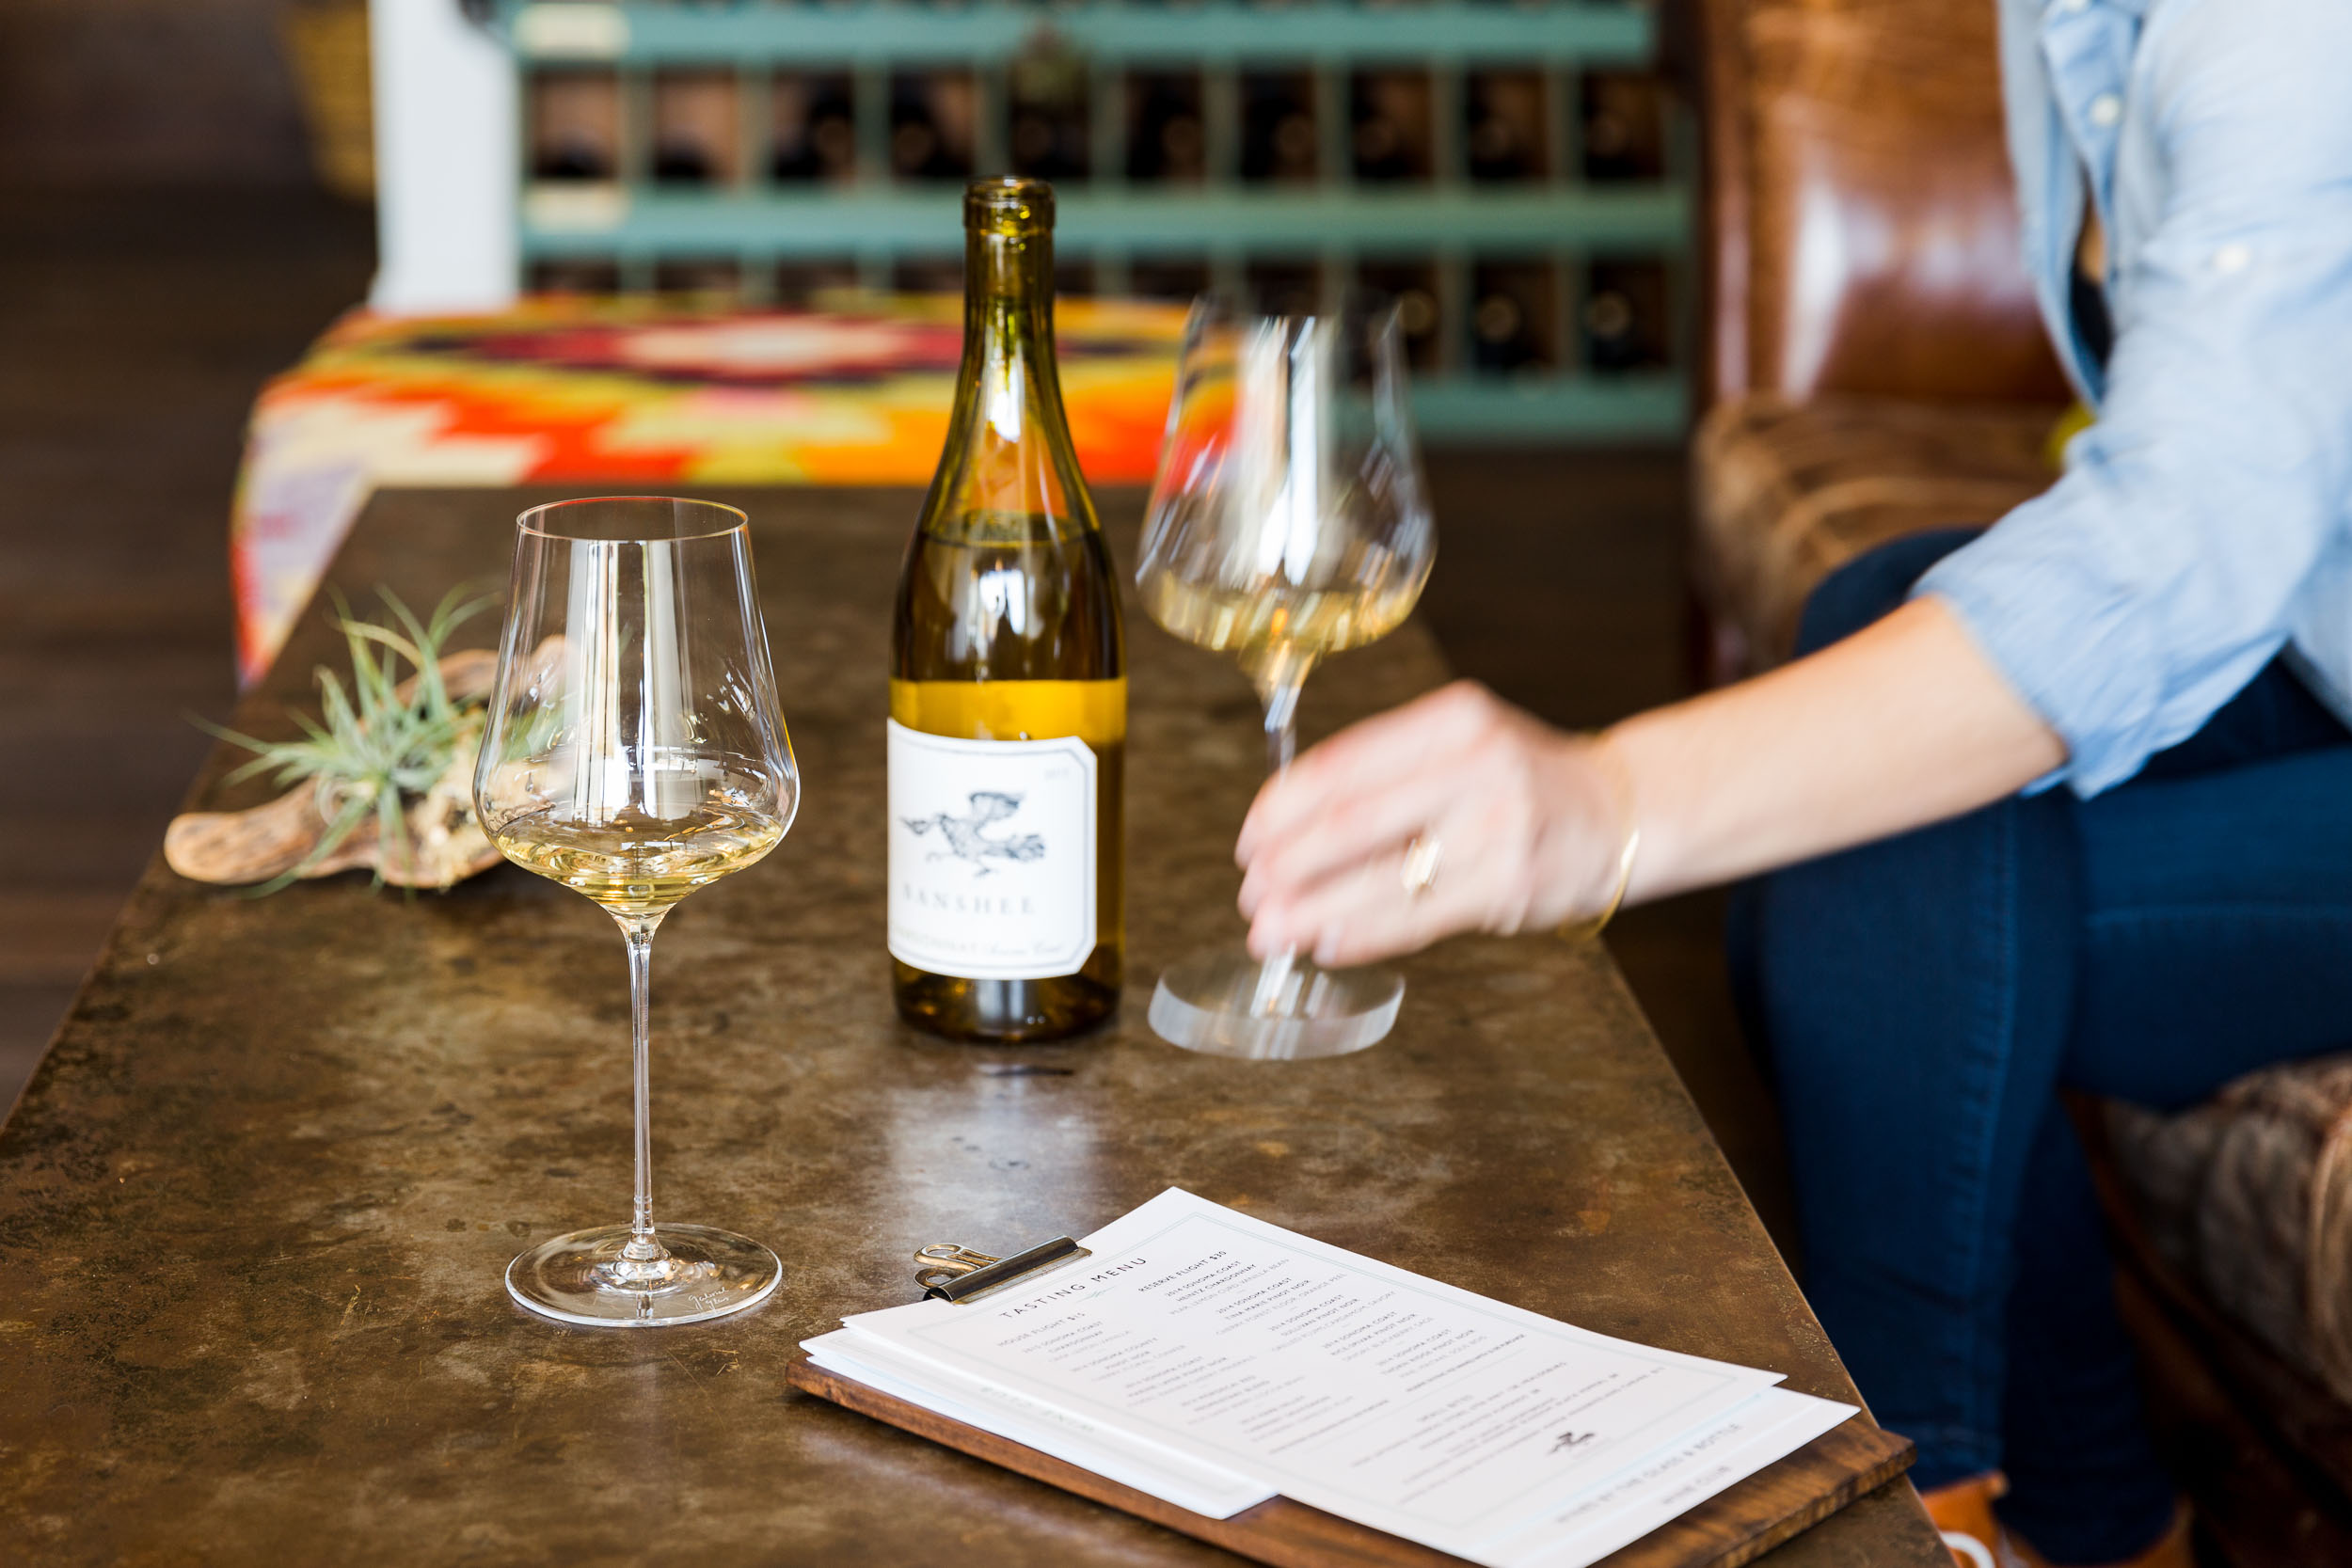 Healdsburg road trip - visiting the Sonoma wine country hot spot and making a day of it.